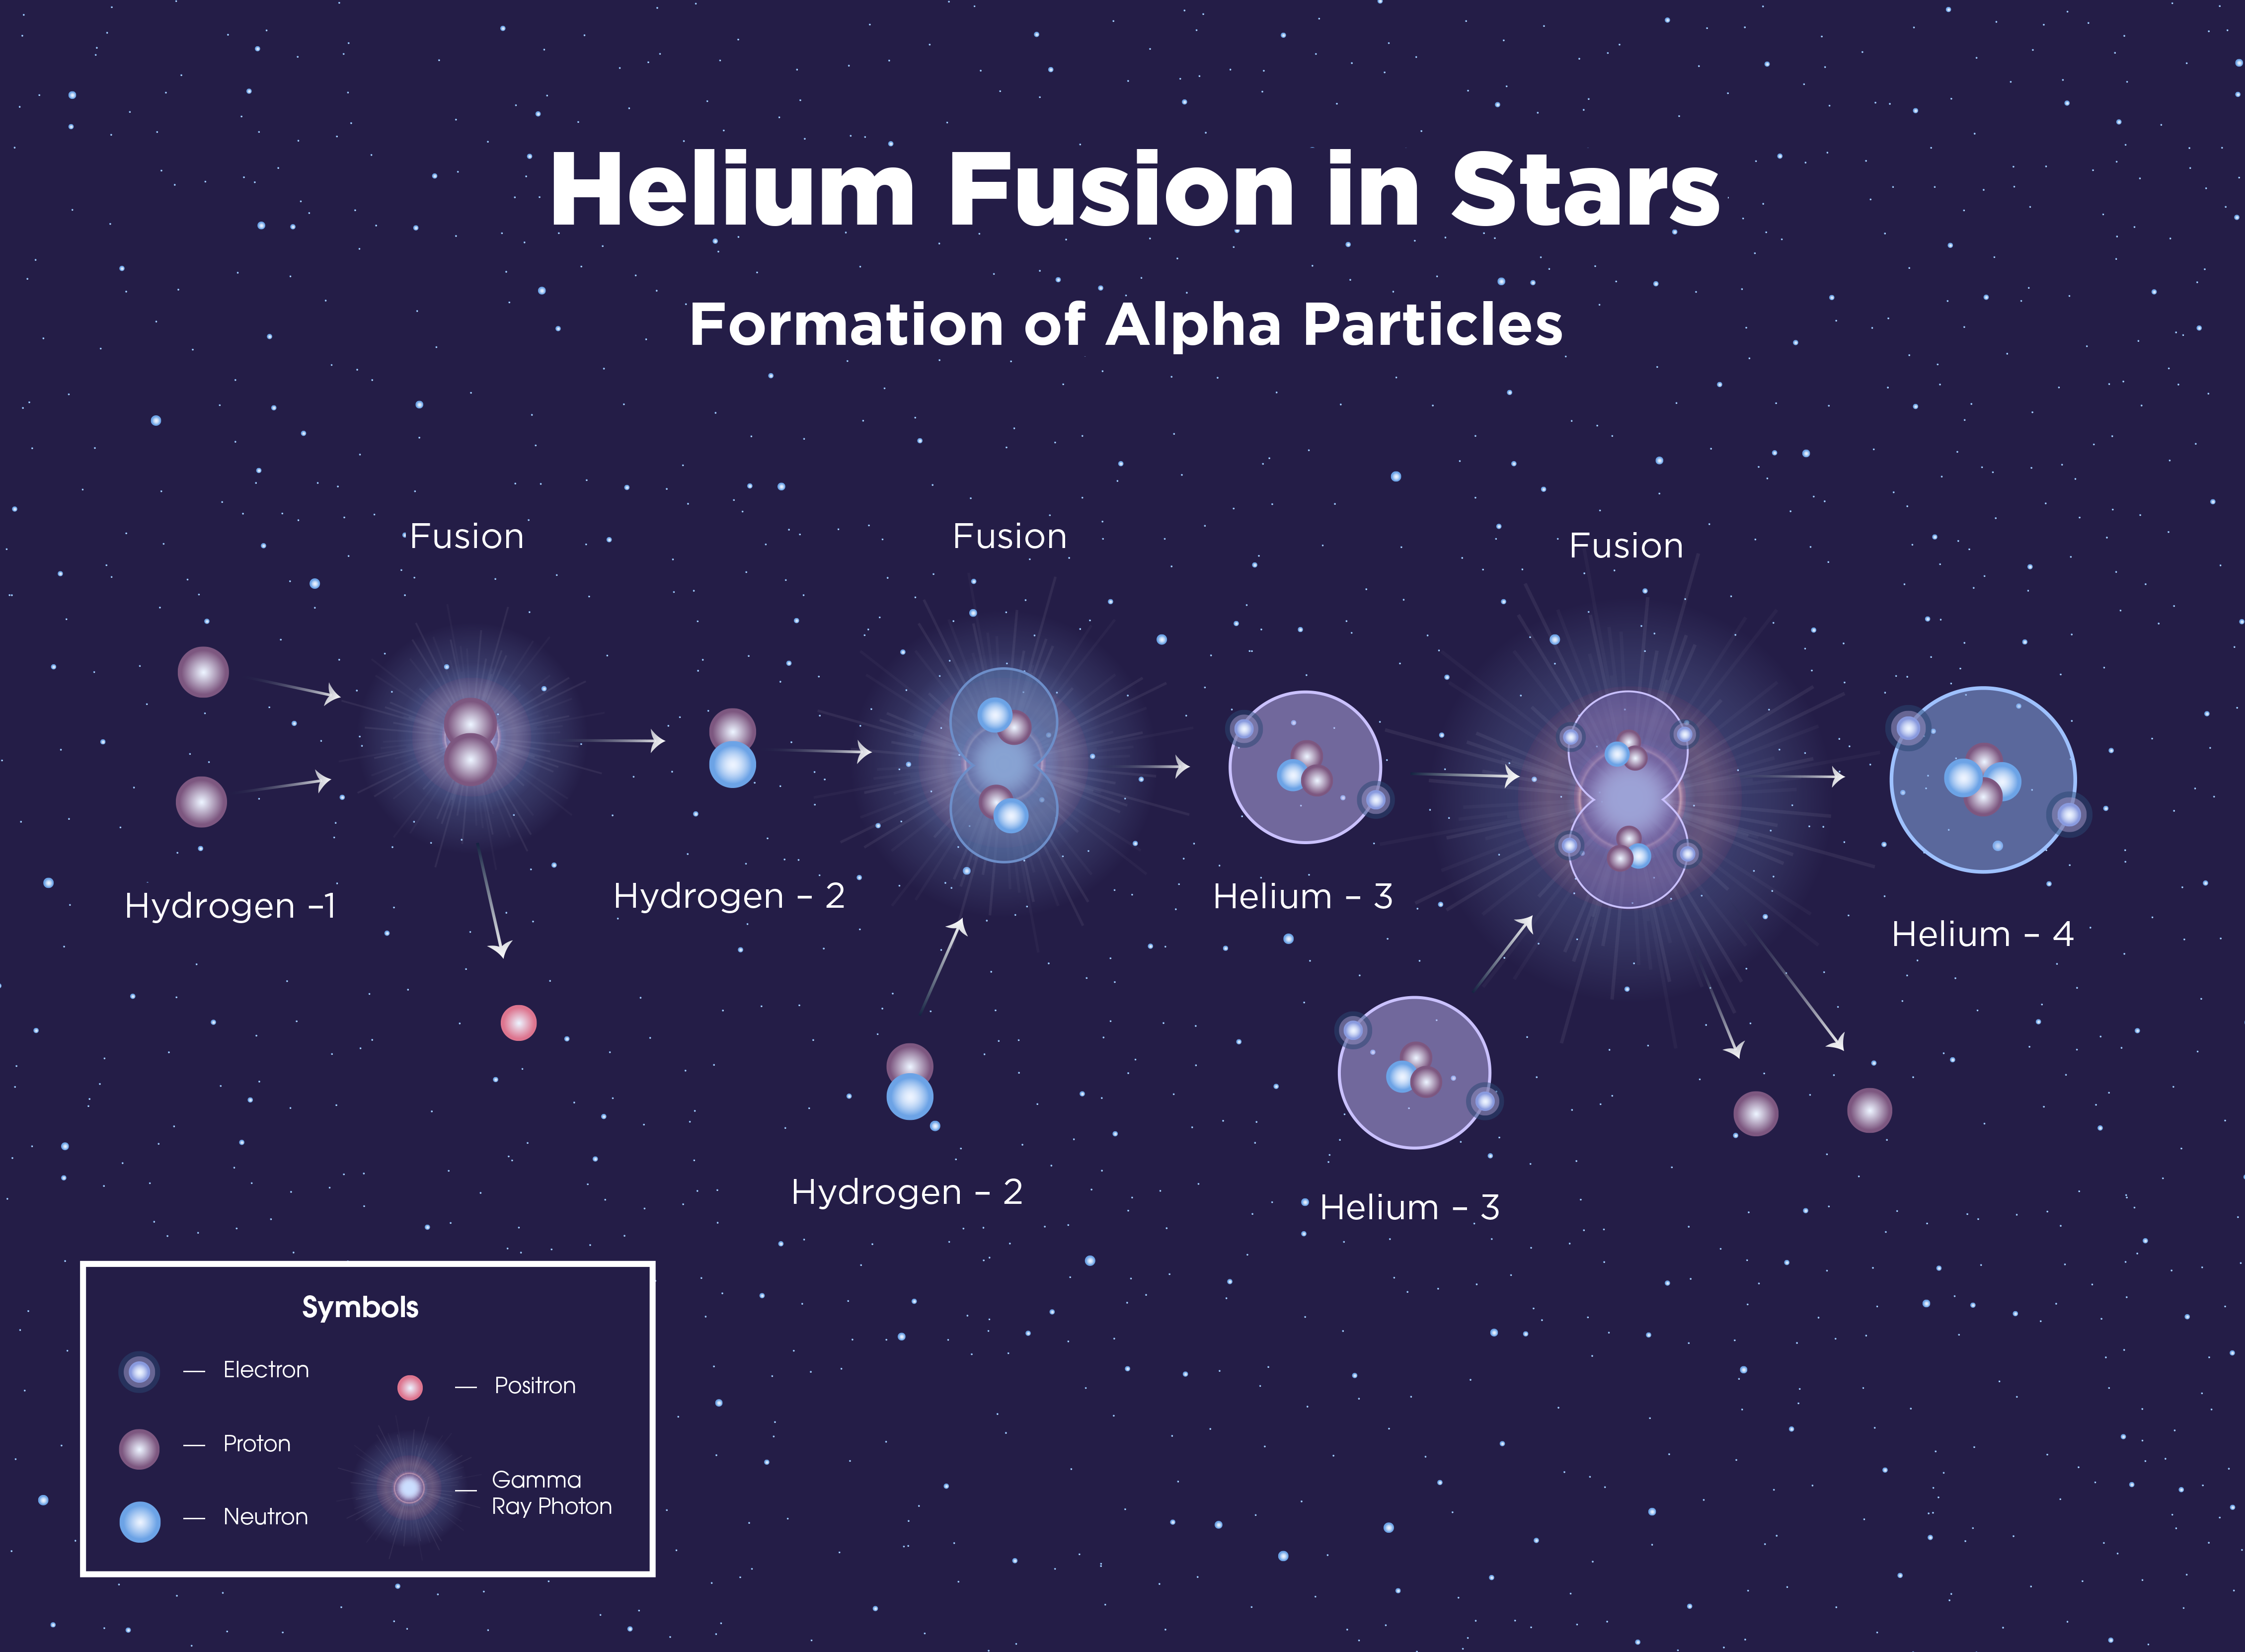 Digital illustration of the helium fusion process that occurs in stars